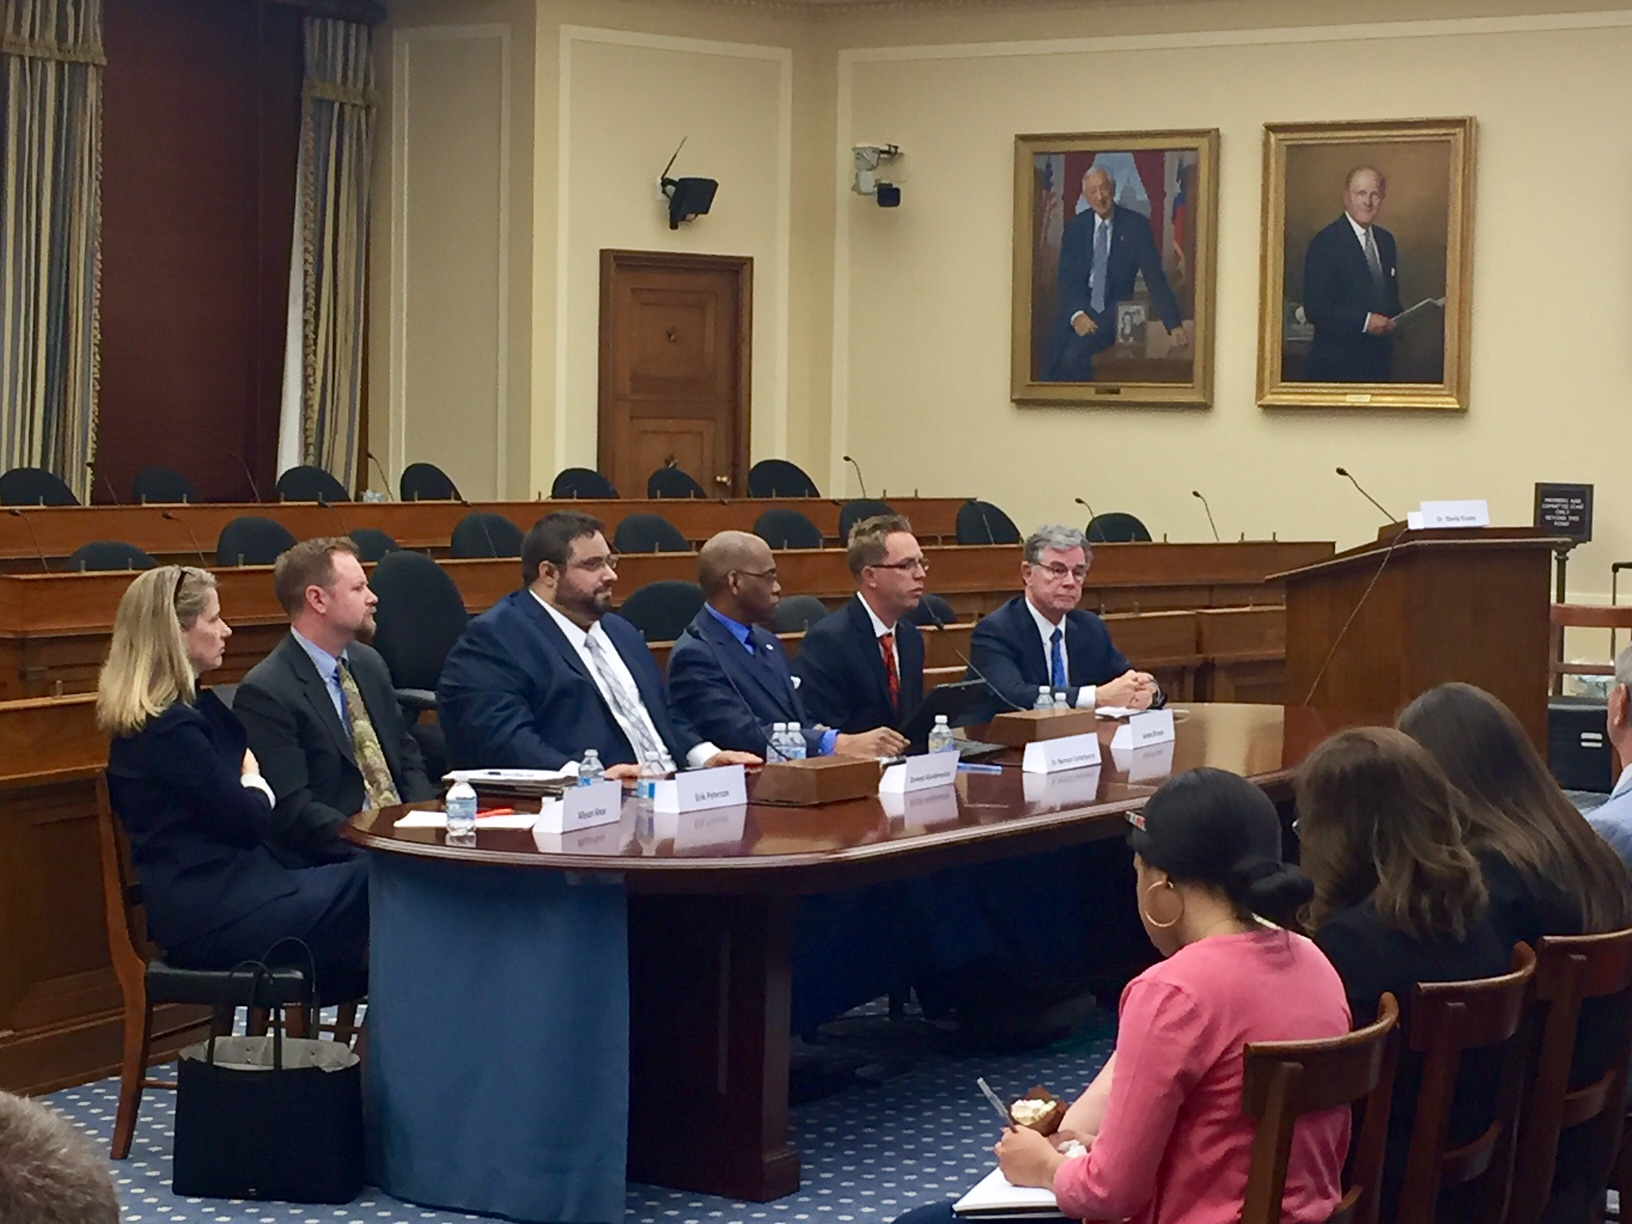 STEM Education Coalition Policy Forum Hosts Hill Briefing